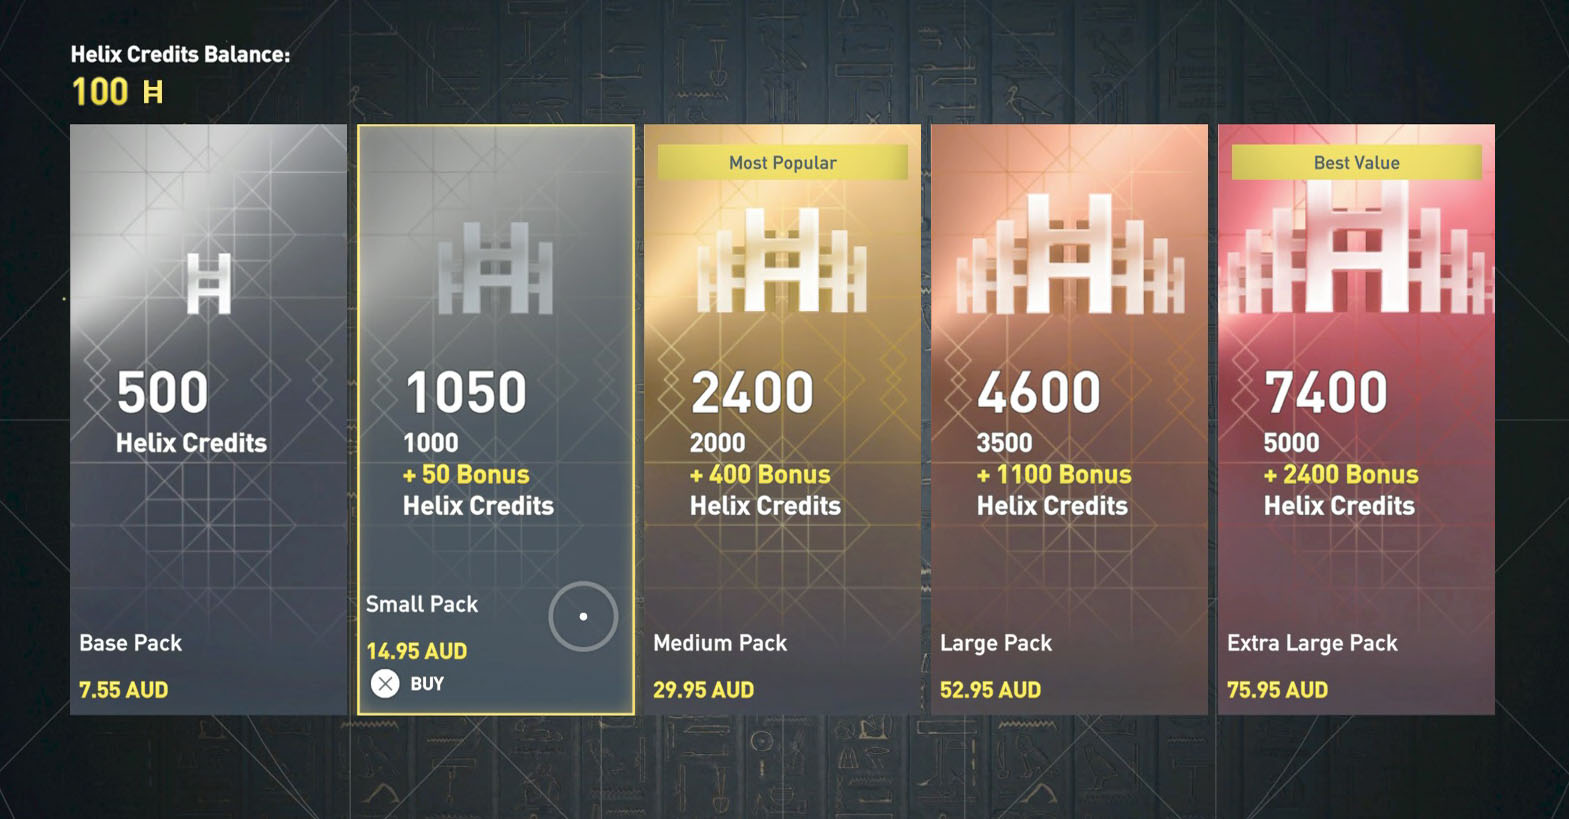 Ac Origins Helix Credits Prices Bundles Amp What You Can Spend Them On